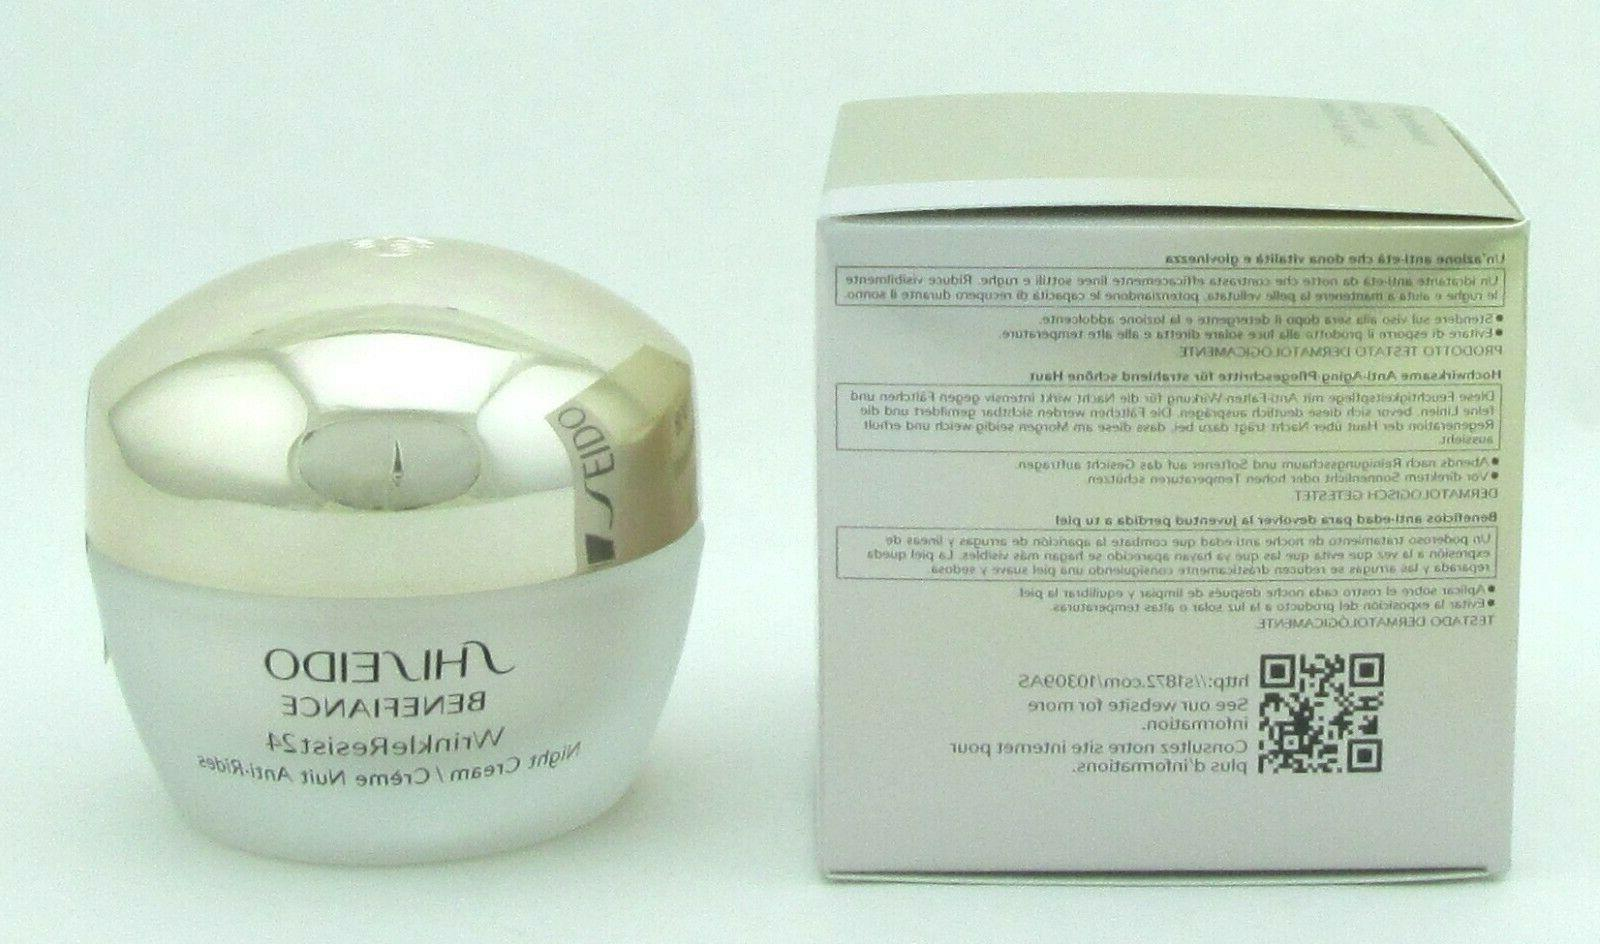 Shiseido Benefiance in Box